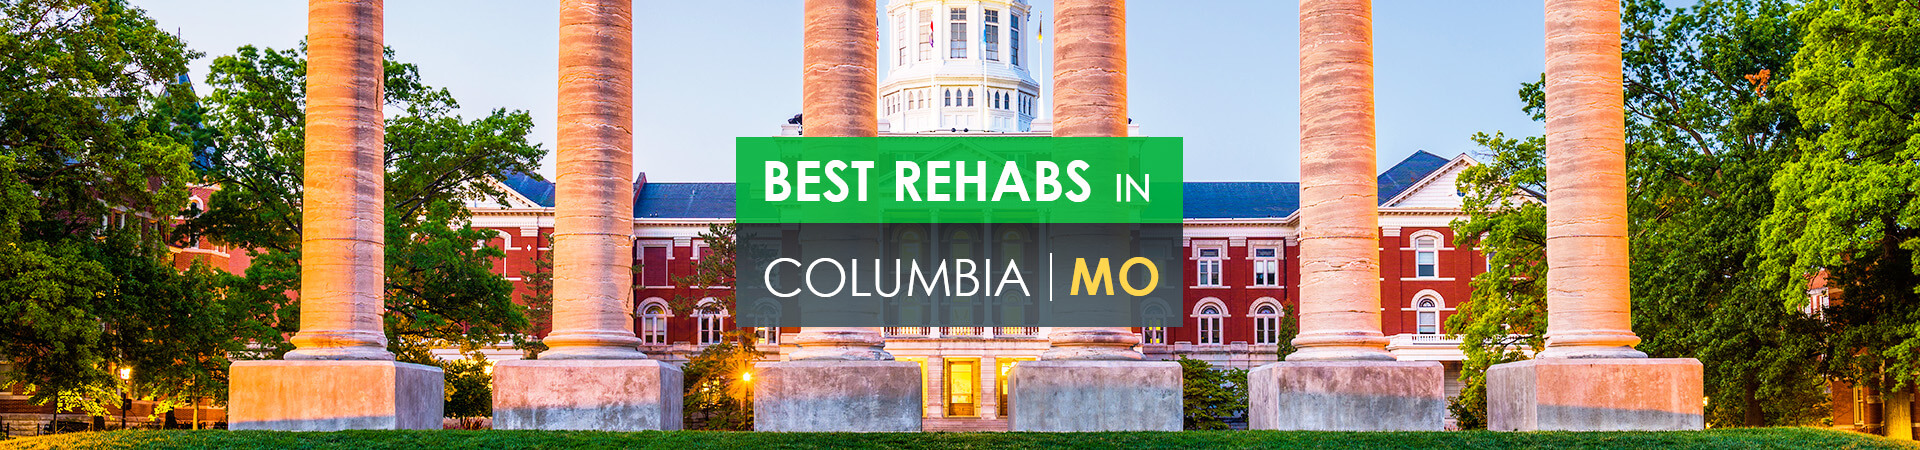 Best rehabs in Columbia, MO